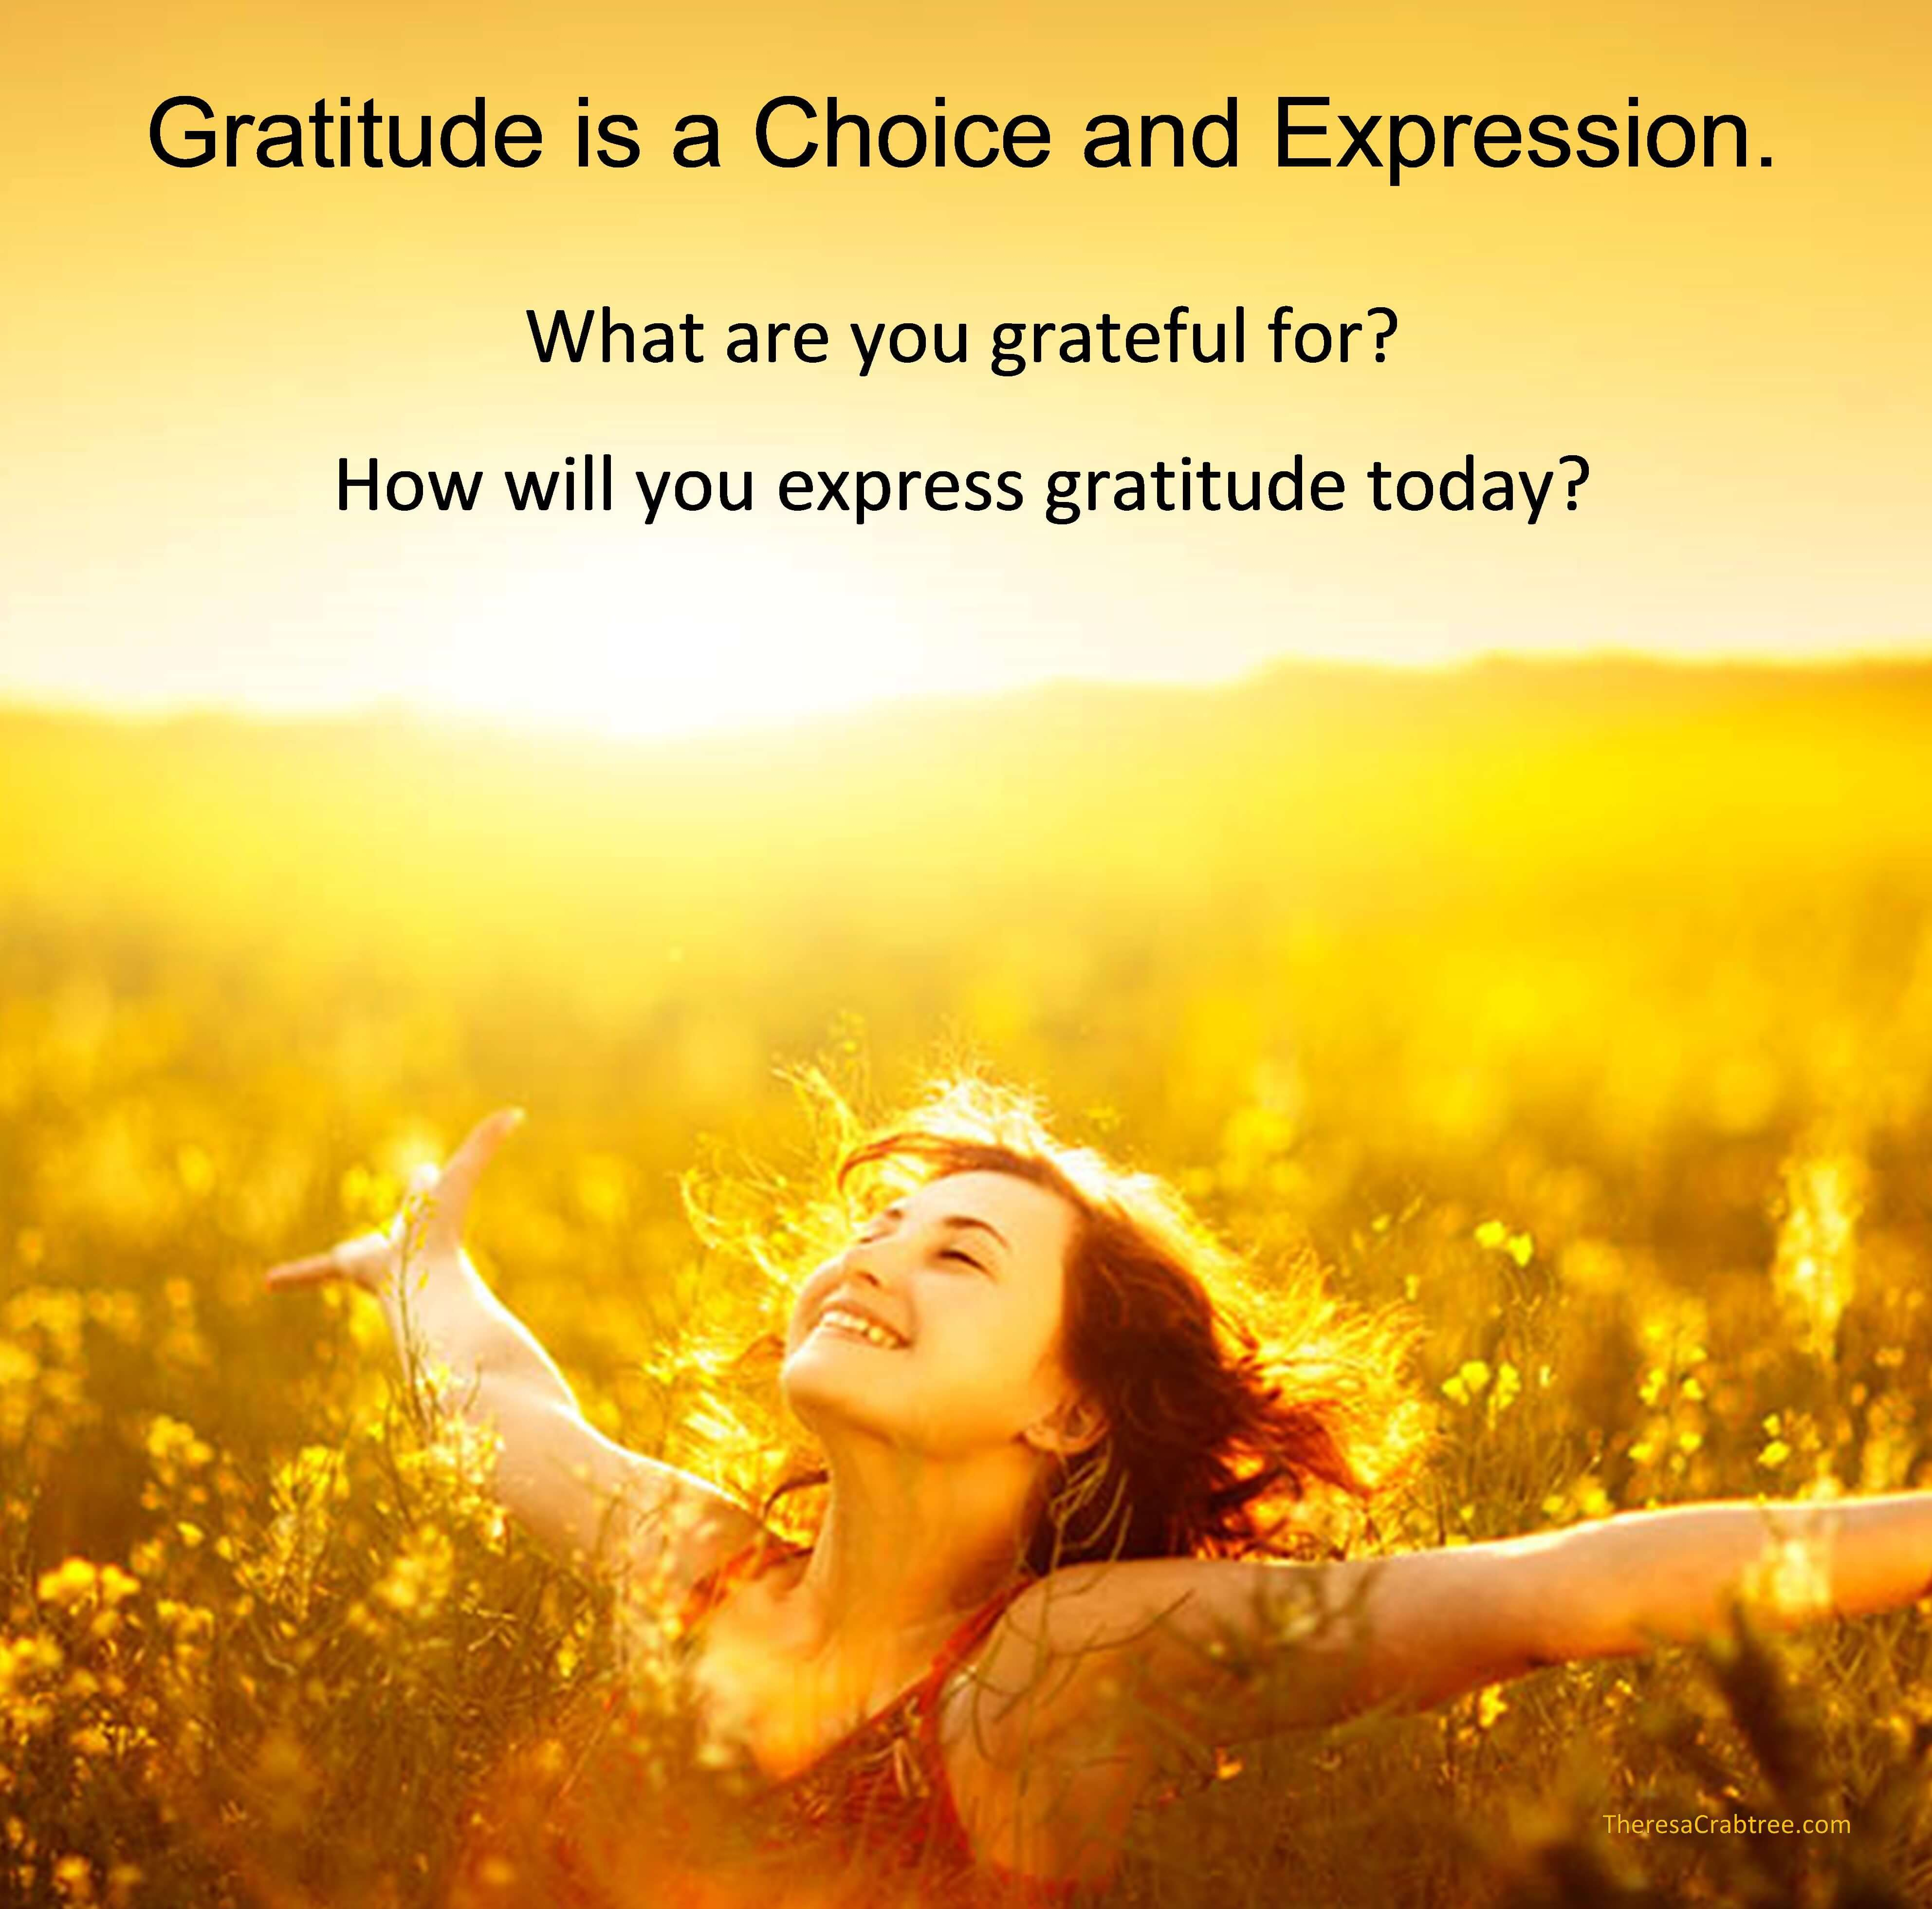 How will you express gratitude today?